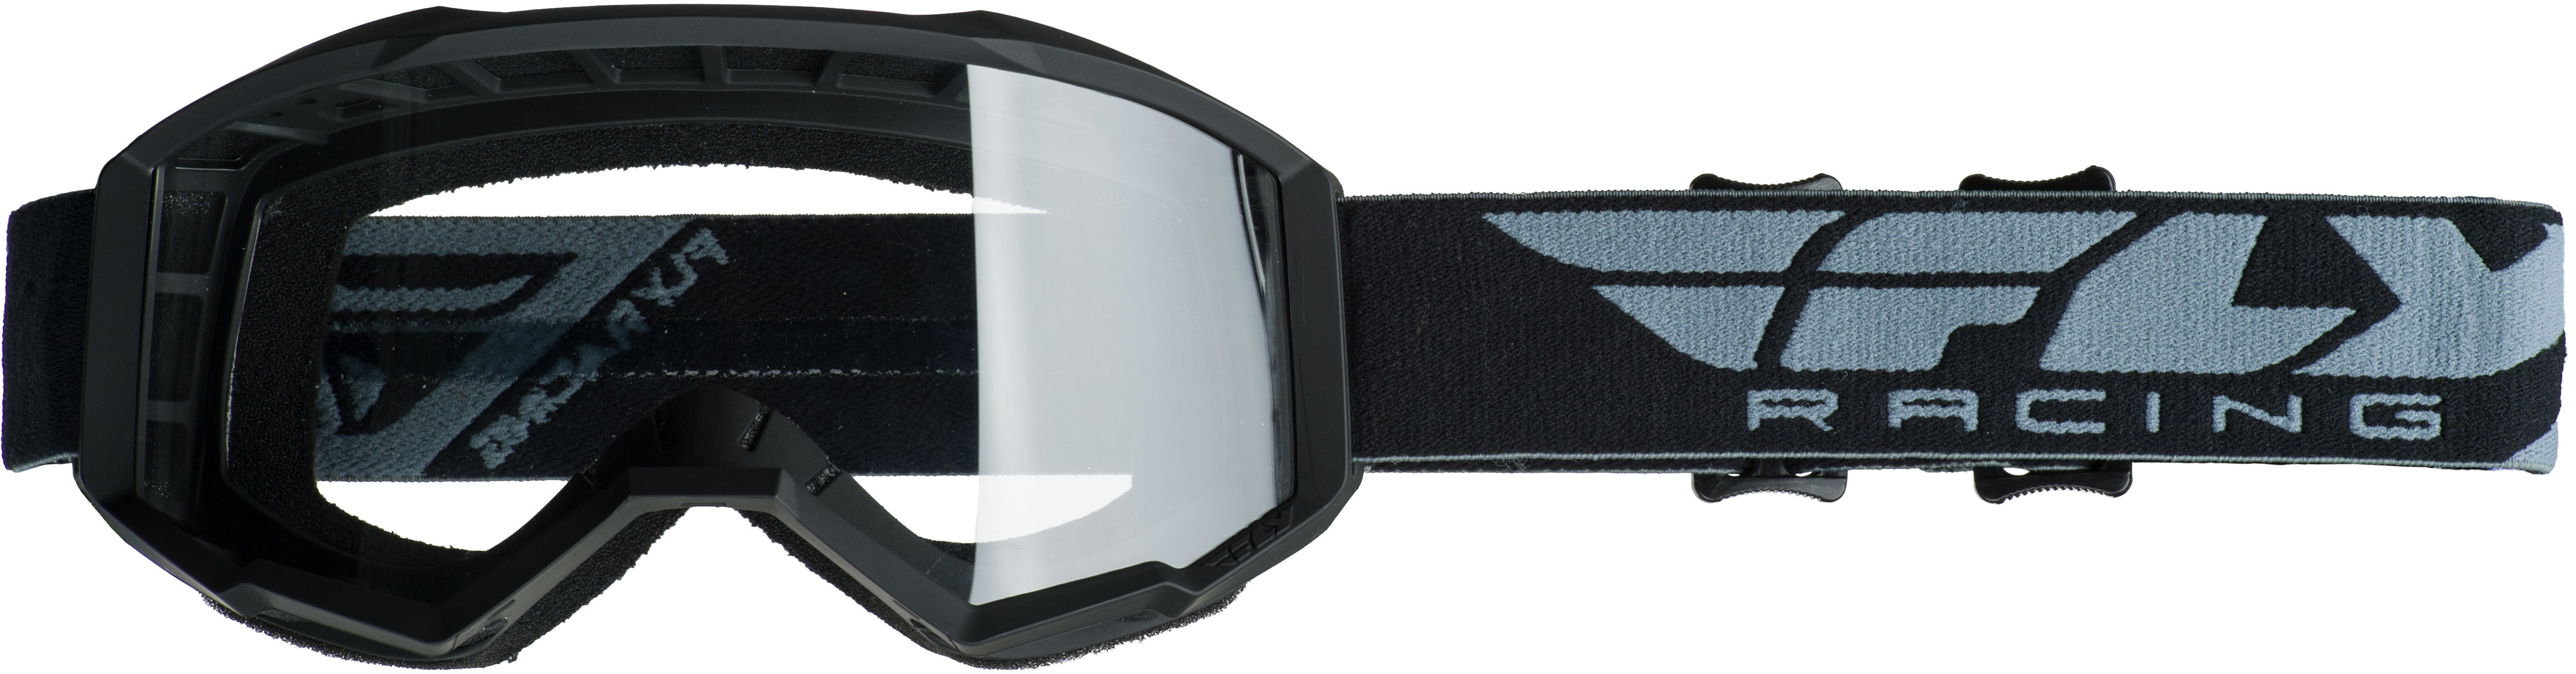 2019 Focus Goggle Black W/Clear Lens